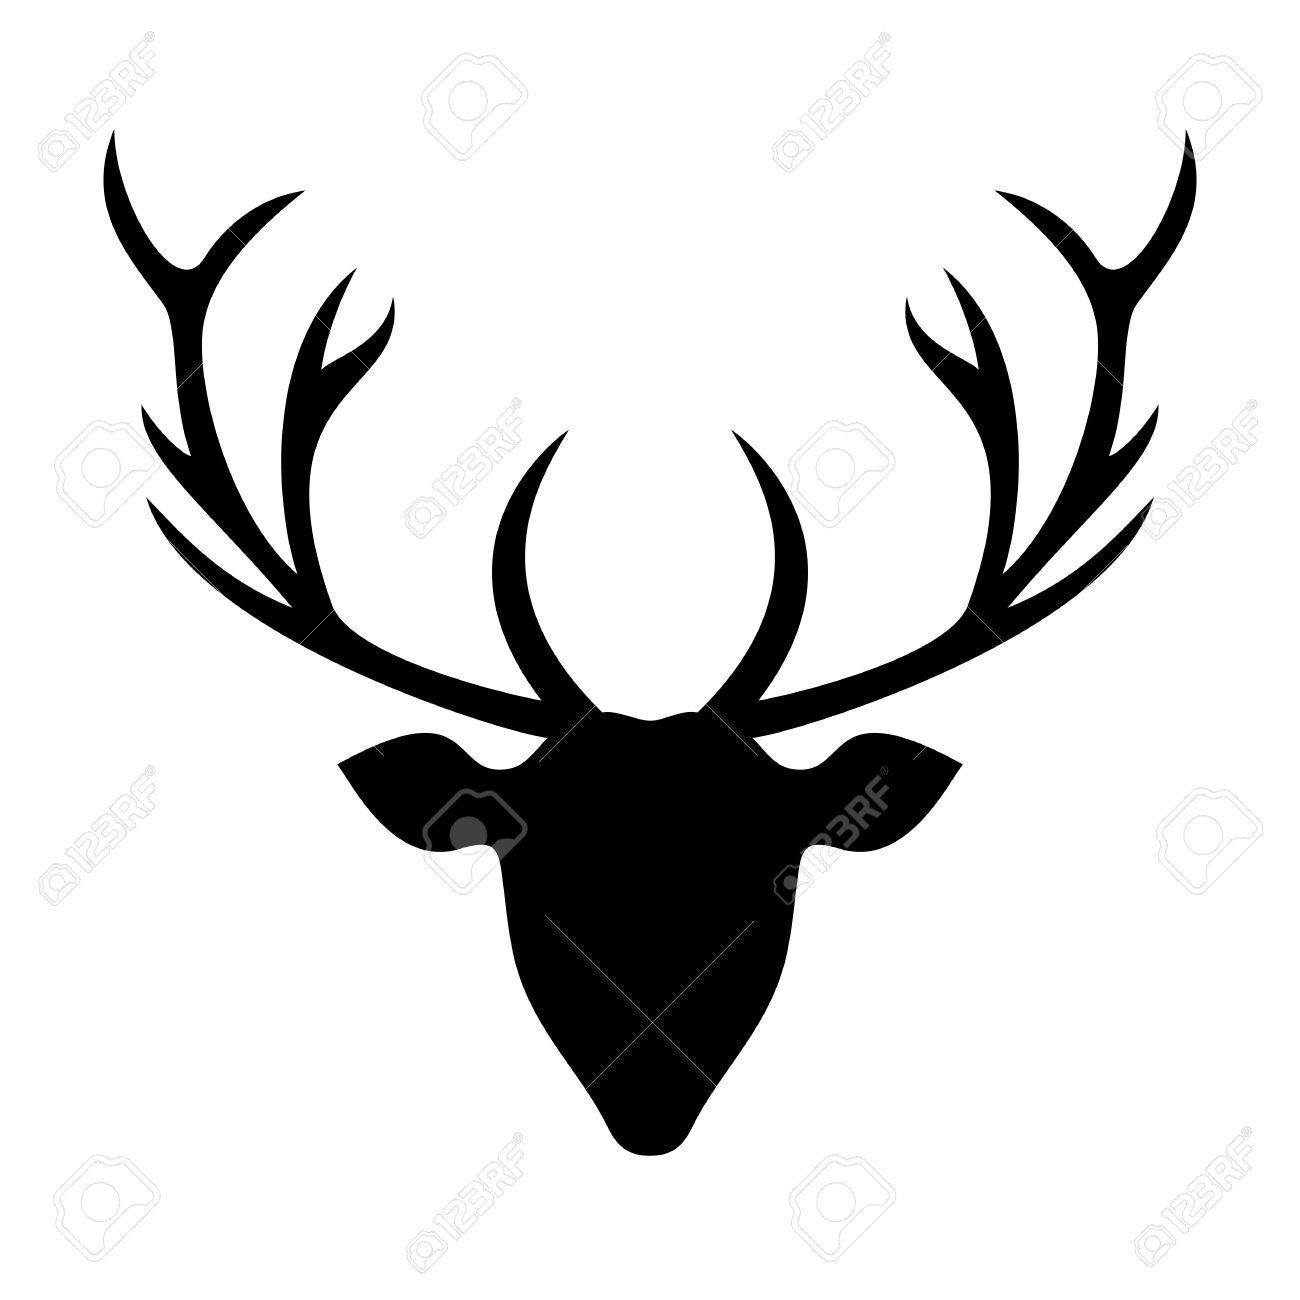 picture about Printable Deer Head Silhouette referred to as Amazing Deer Silhouette Stencil Drawing Deer Thoughts Silhouette